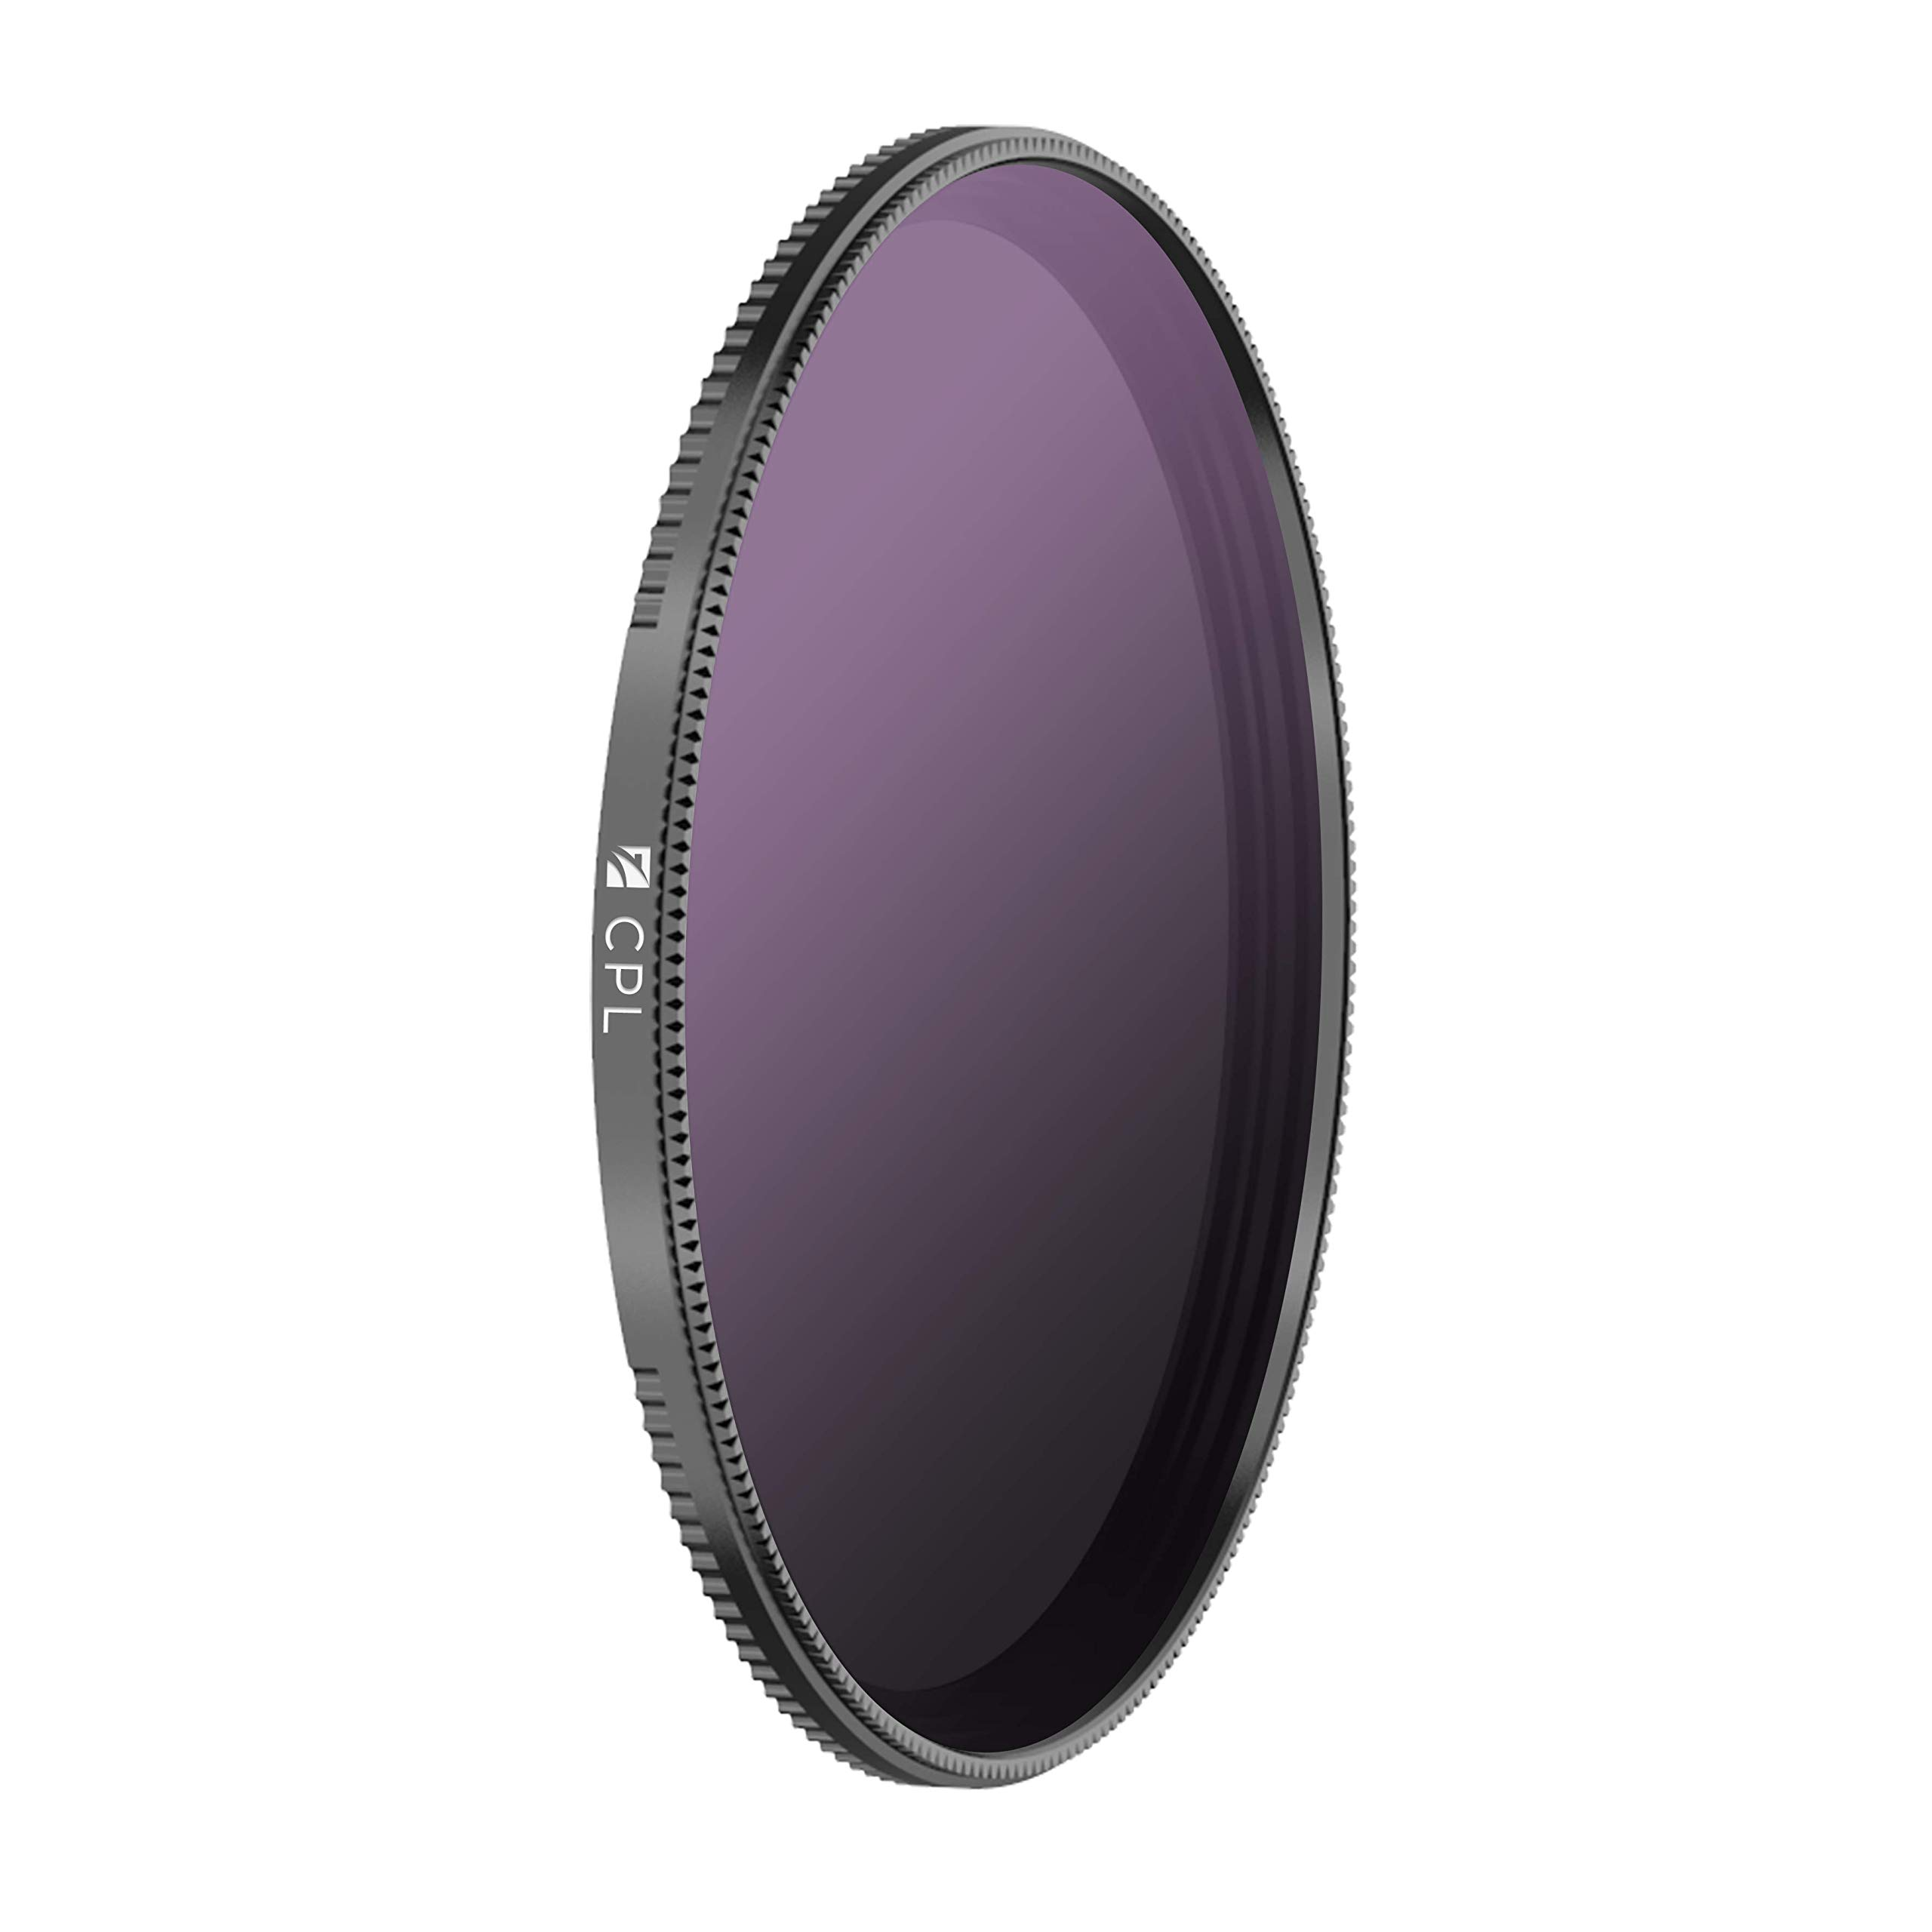 Freewell Magnetic Quick Swap System 77mm Circular Polarizer (CP) Camera Filter by Freewell